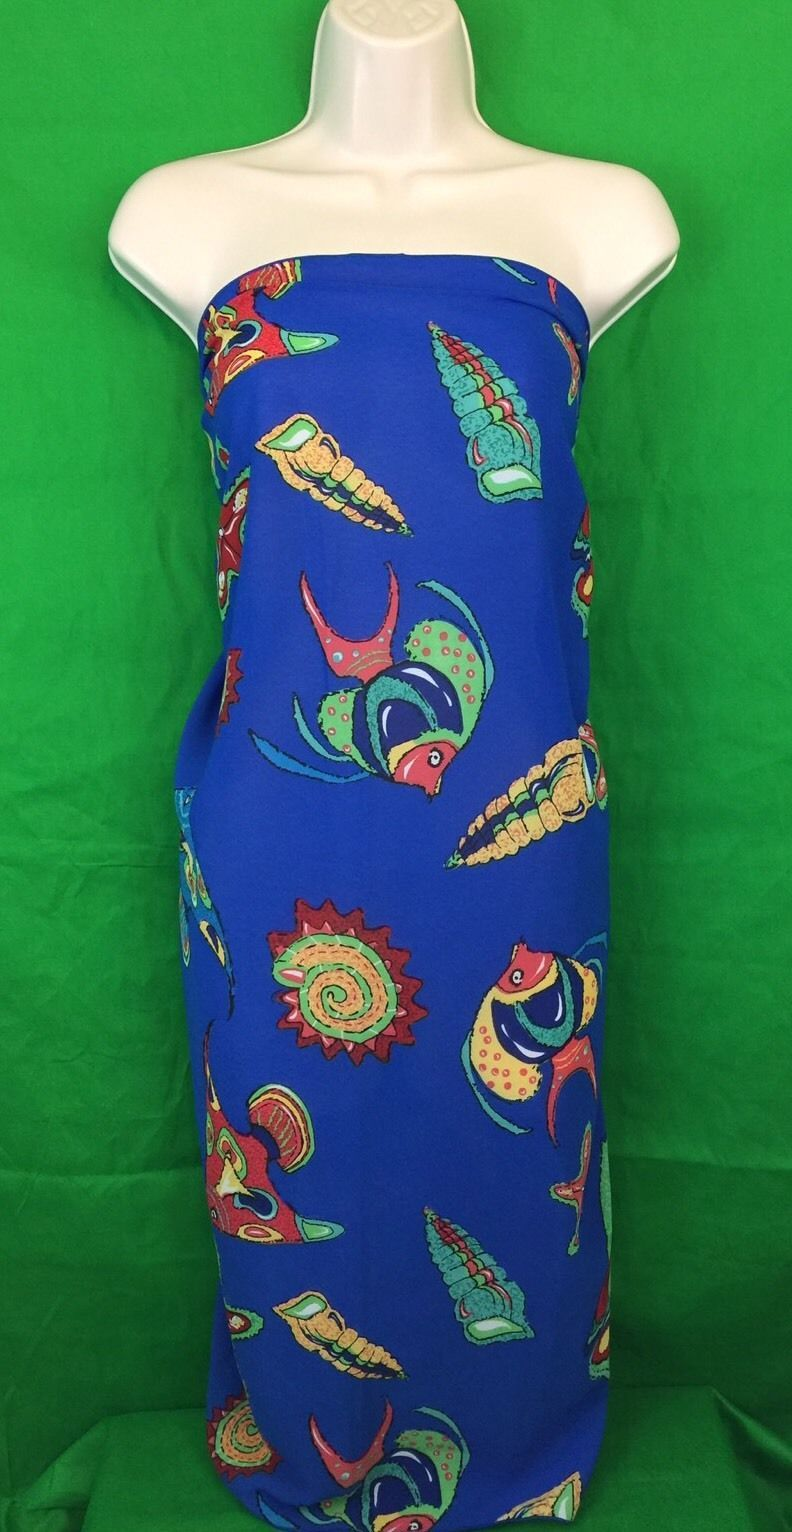 Westbound Blue Tropical Fish Beach, Pool, Sarong, Wrap, Coverup. Sarong can be worn in several different styles. View pictures for details. Good preowned condition, missing label.   eBay!